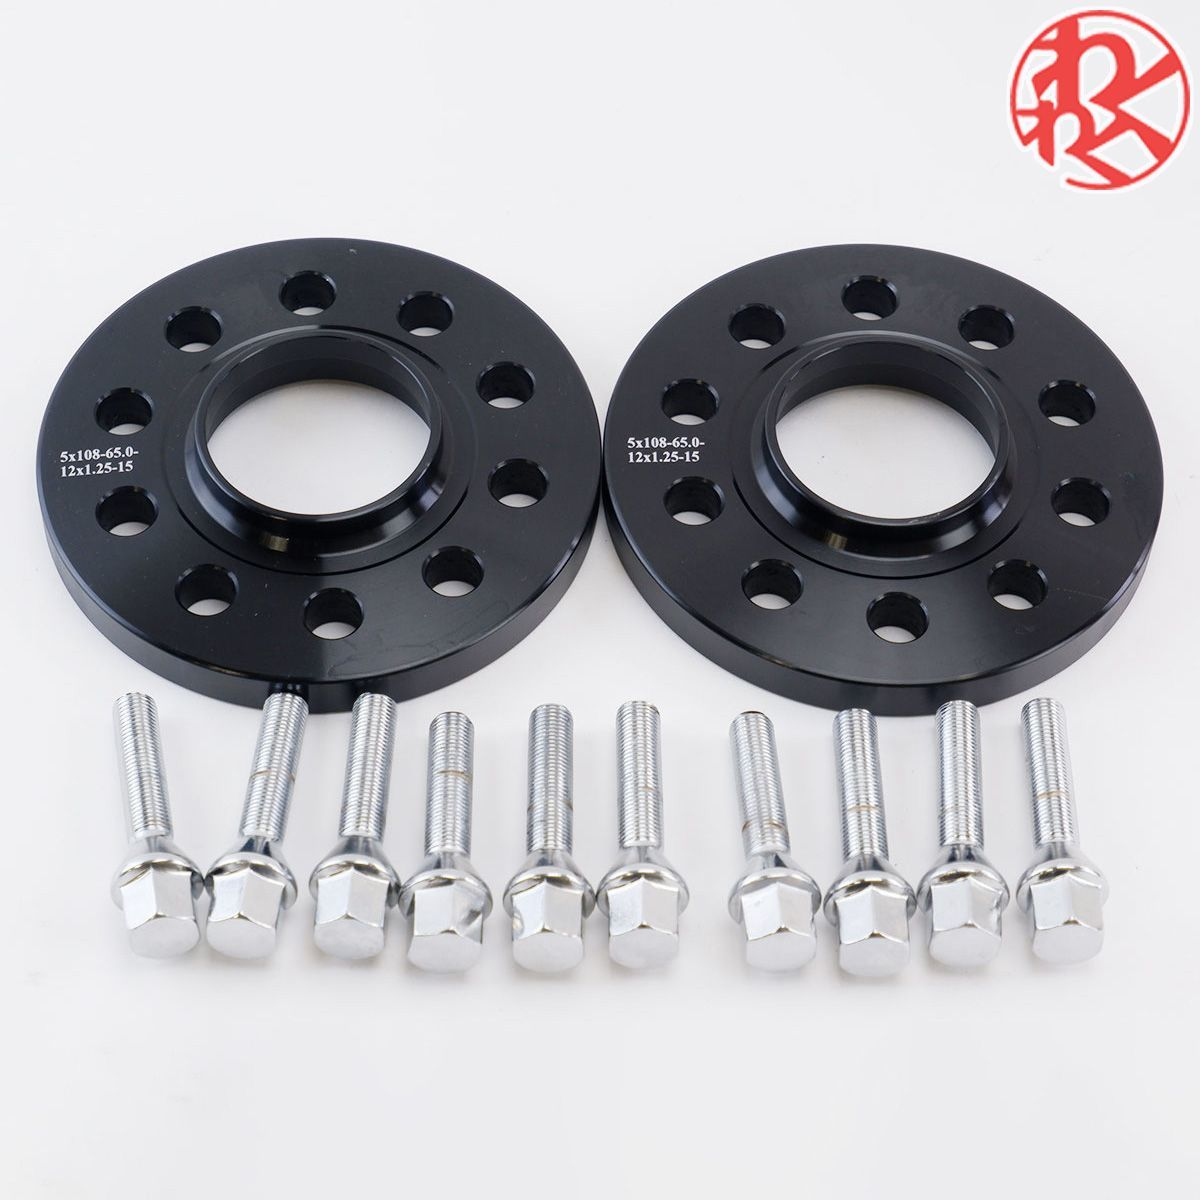 wide-tread spacer hub one body thickness 15mm PCD108 5 hole hub diameter φ65 M12×P1.25 taper bearing surface bolt attaching Peugeot 3008 508 308 RCZ